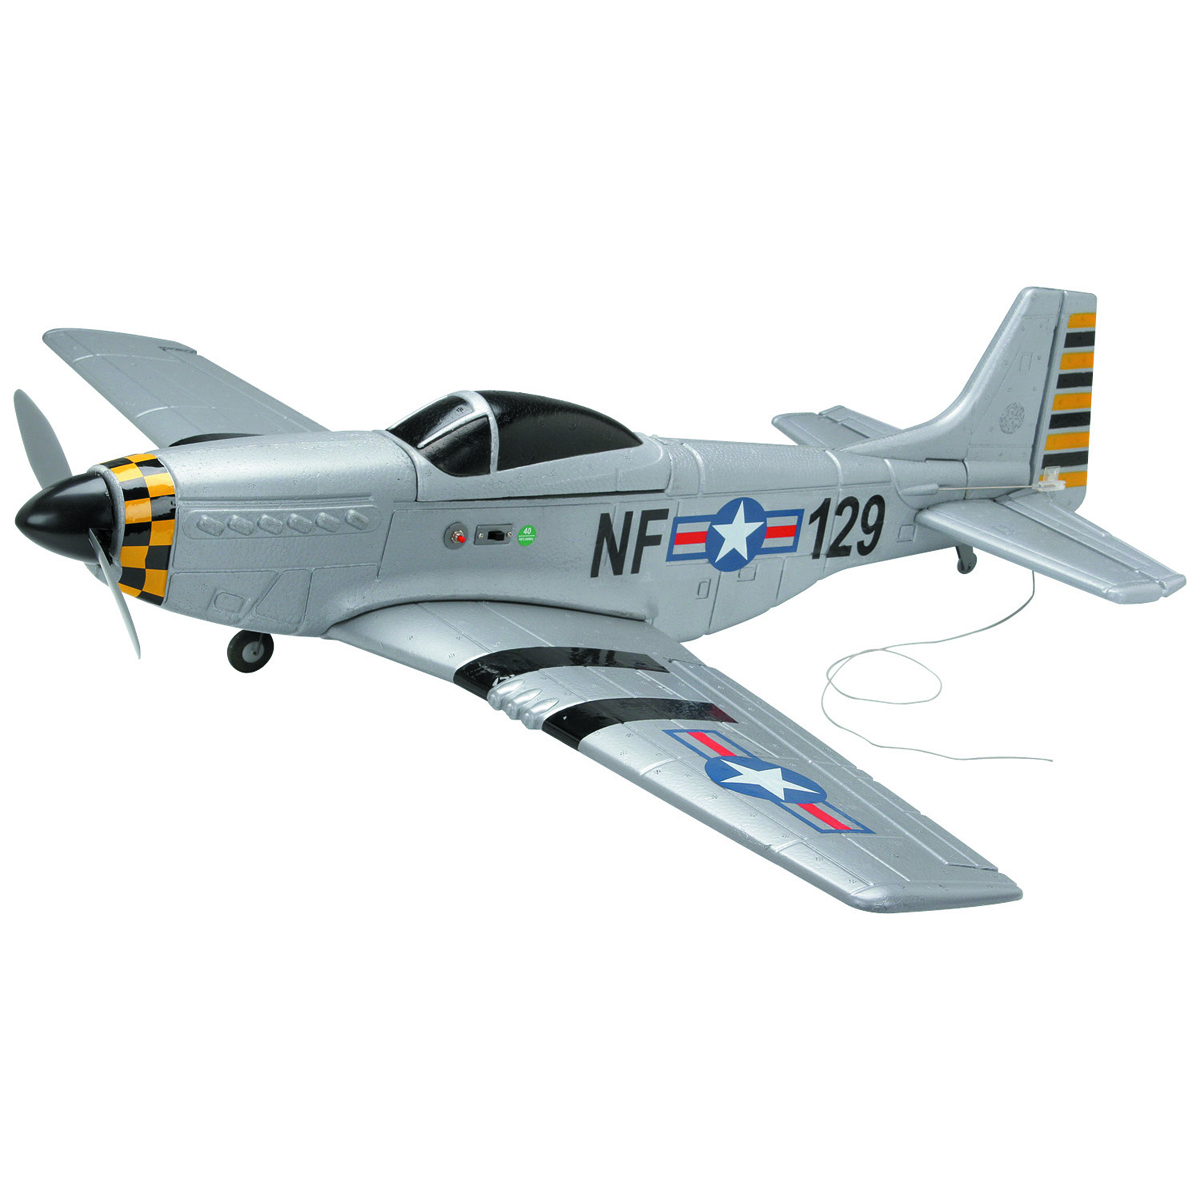 remote control airplanes videos with Radio Controlled P51 Mustang Airplane 97393 on 32796589916 likewise Bell P 59 Aira et Cutaway Drawing likewise Ride On Car Twin 6v Electric Motorised Jeep Wrangler Style Sit And Ride Toy In Black 1489 P together with Emb312tu1206 also Radio Controlled P51 Mustang Airplane 97393.